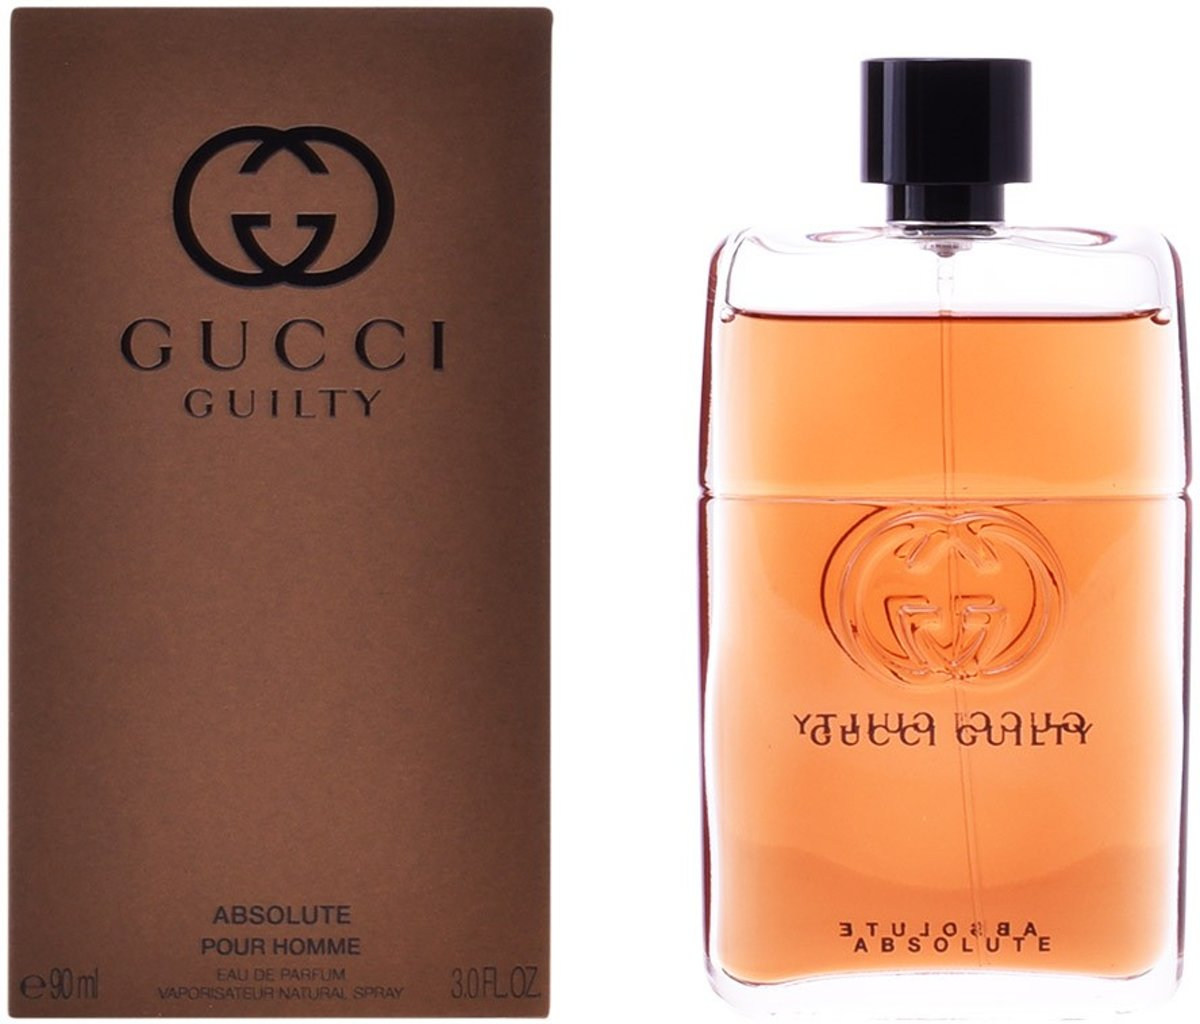 MULTI BUNDEL 2 stuks GUCCI GUILTY ABSOLUTE POUR HOMME Eau de Perfume Spray 90 ml